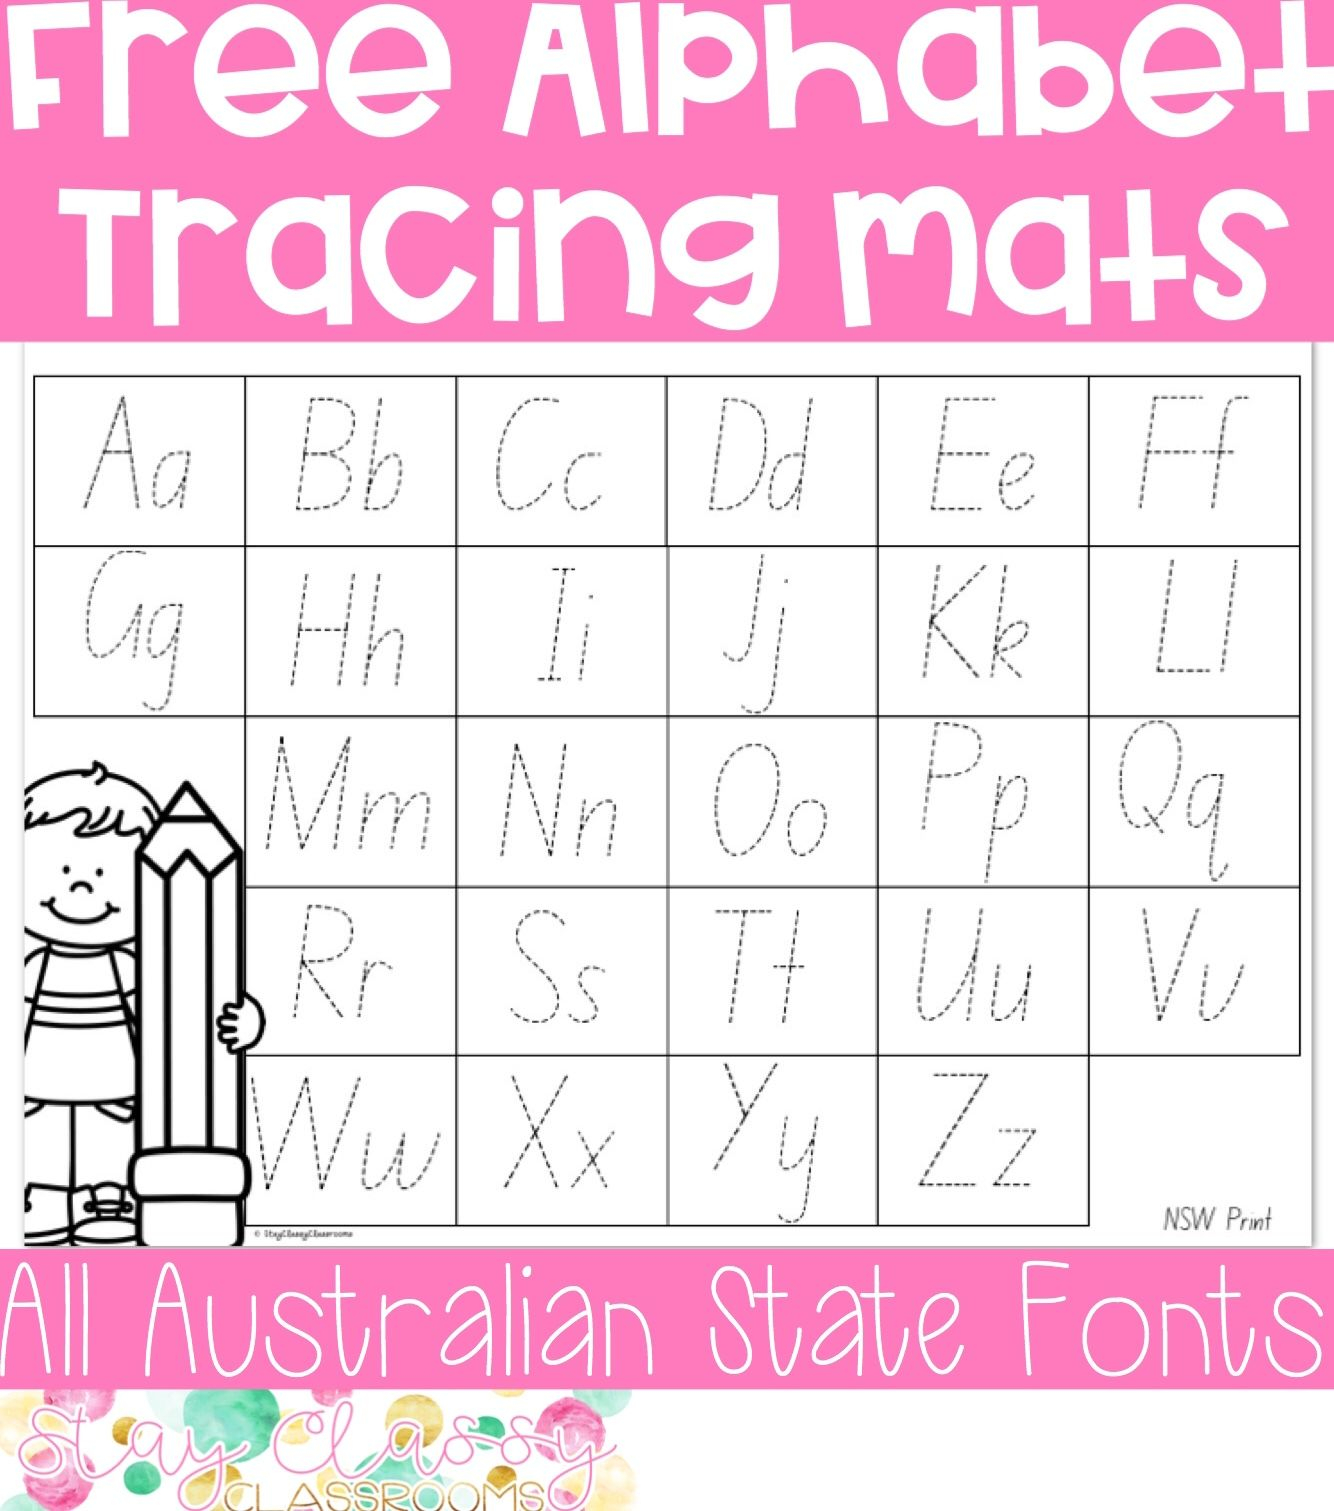 Alphabet Tracing Mats (Print And Australian Fonts